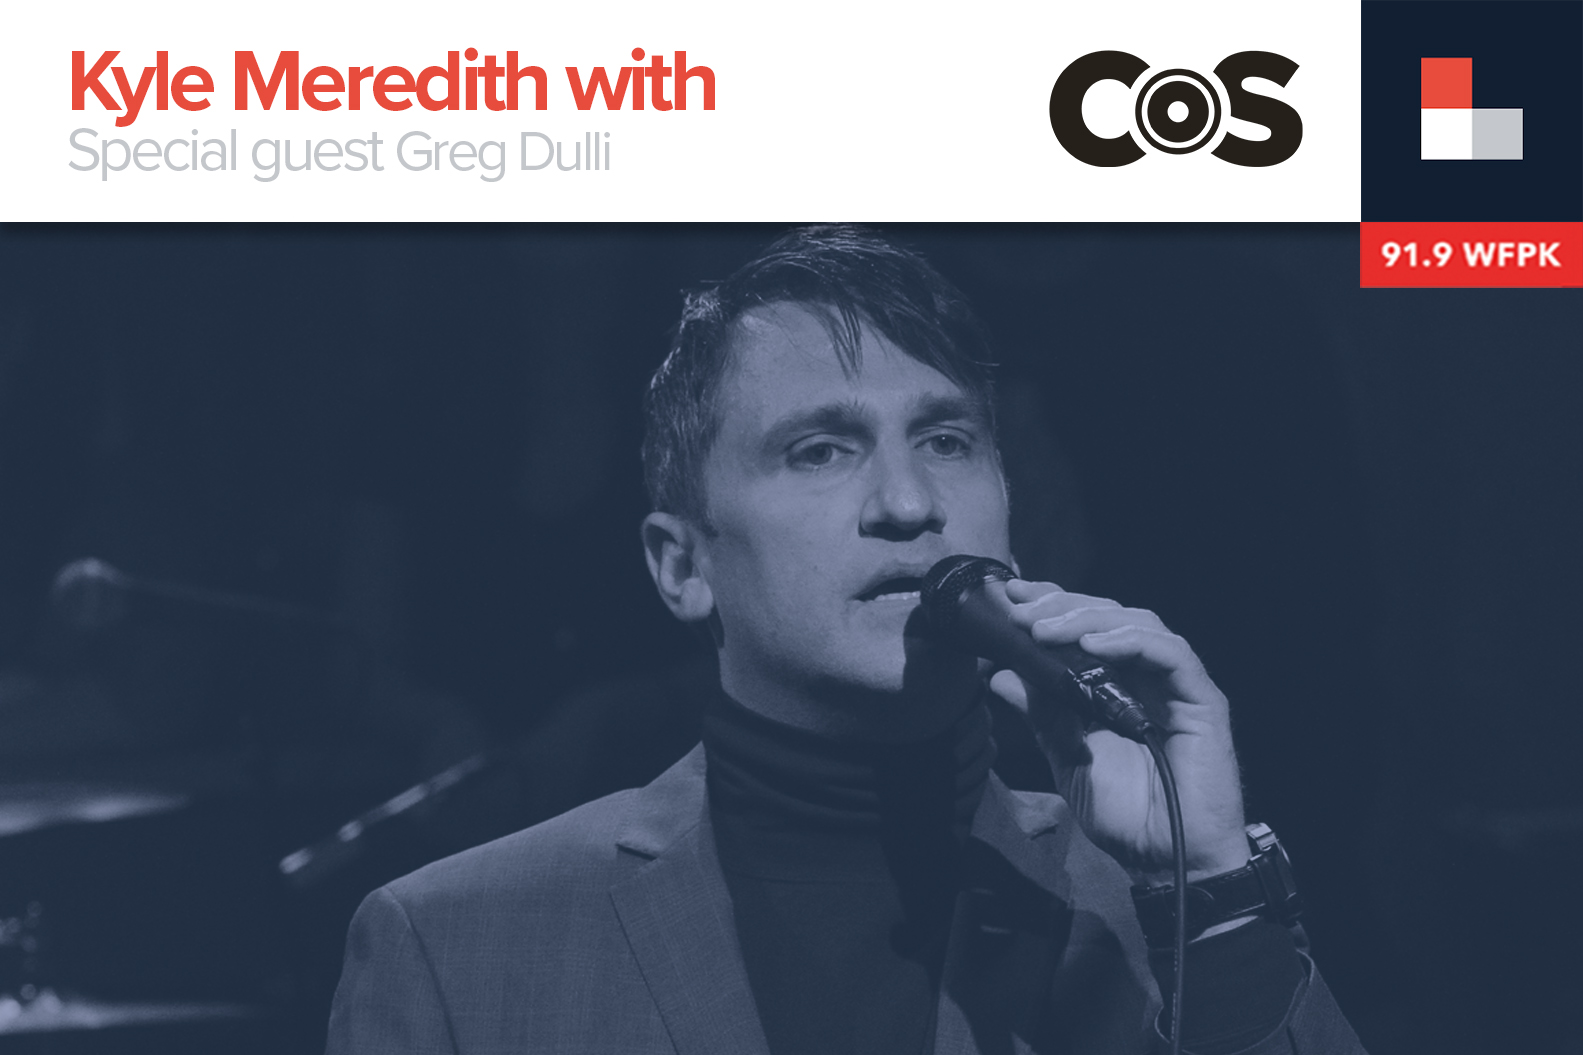 Kyle Meredith With... Greg Dulli